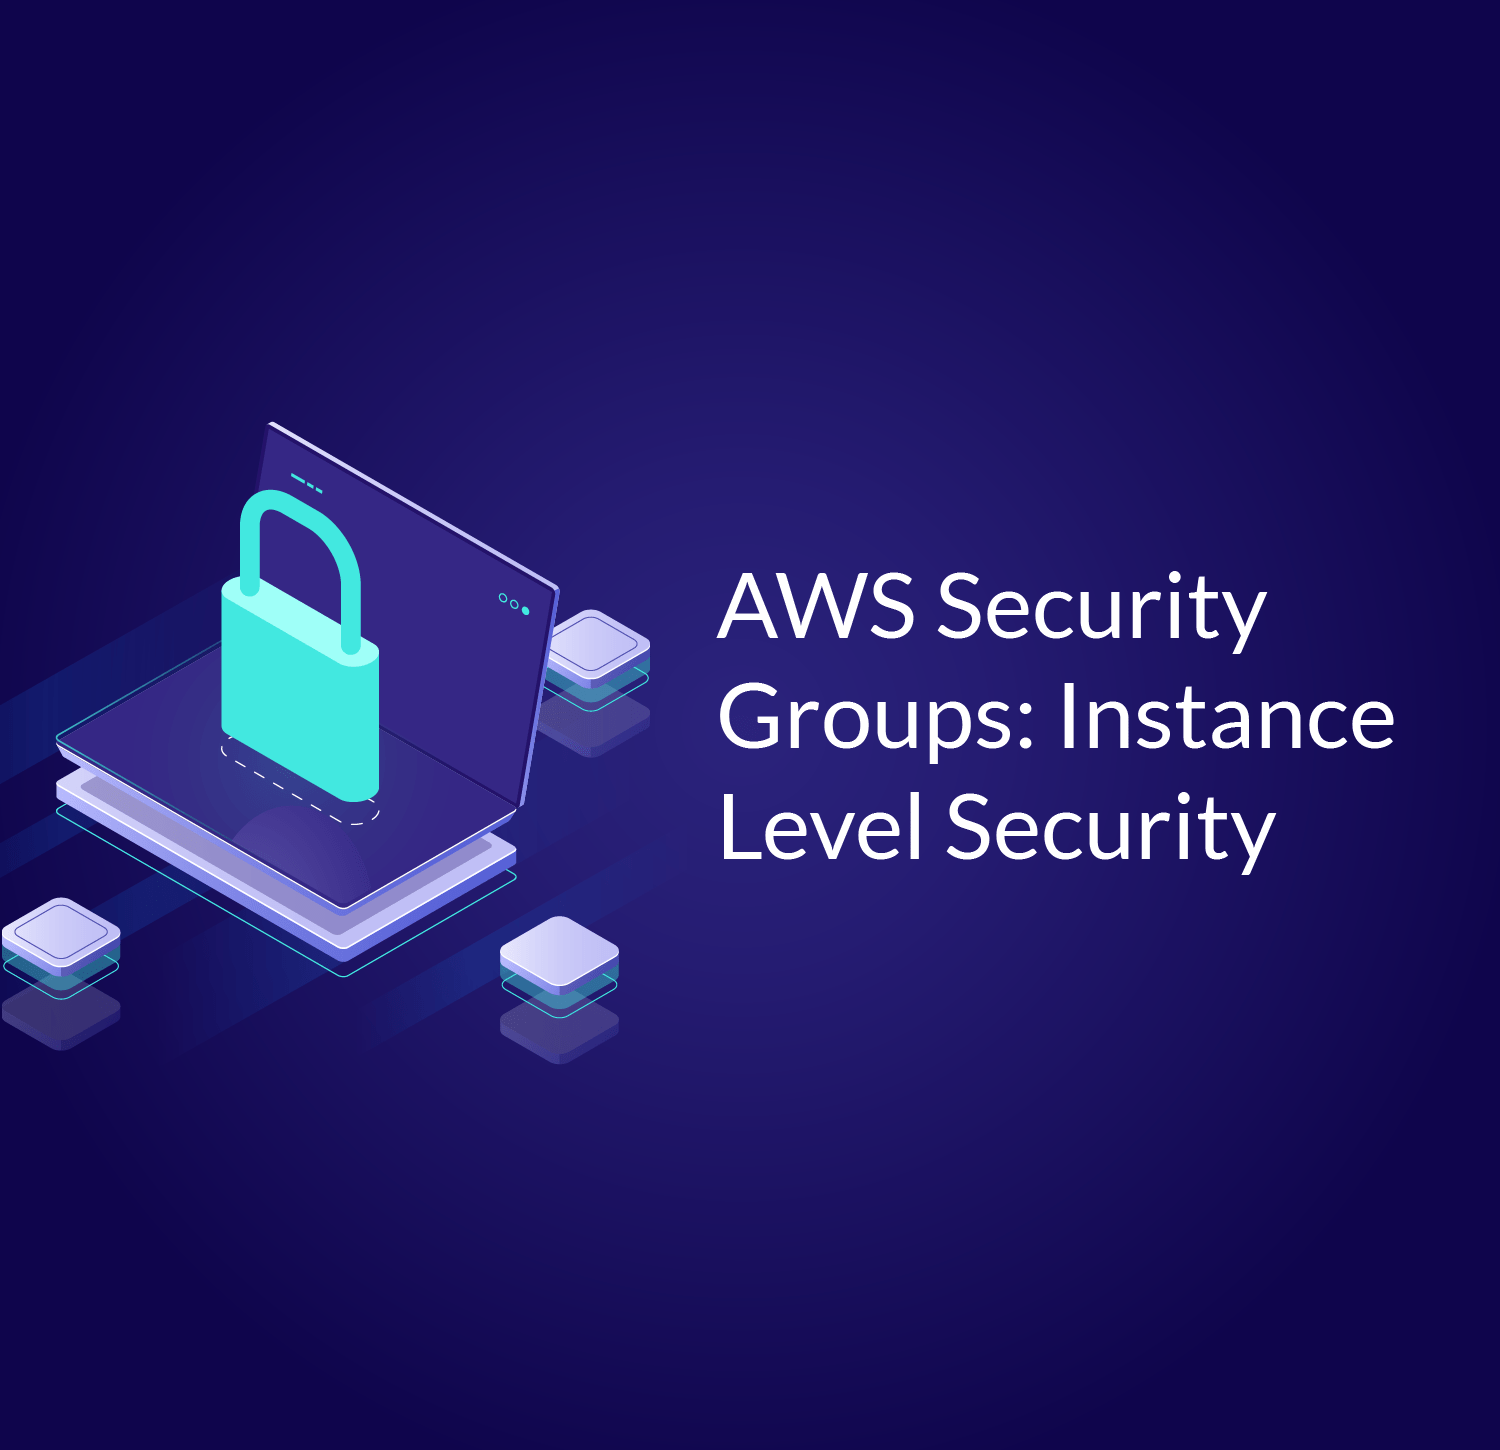 AWS Security Groups: Instance Level Security